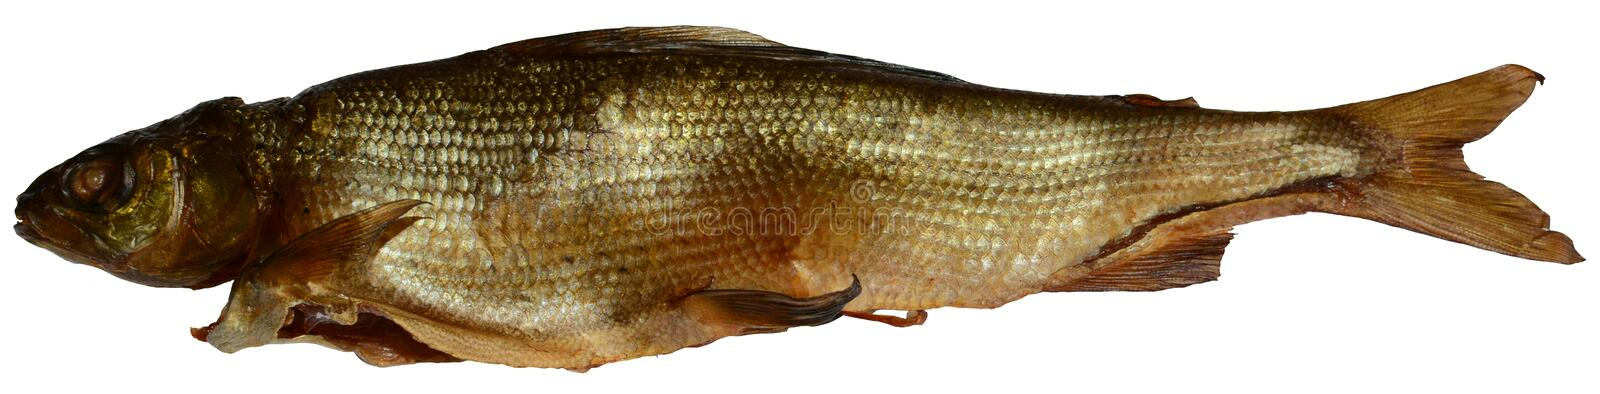 Goldfish grayling stock images